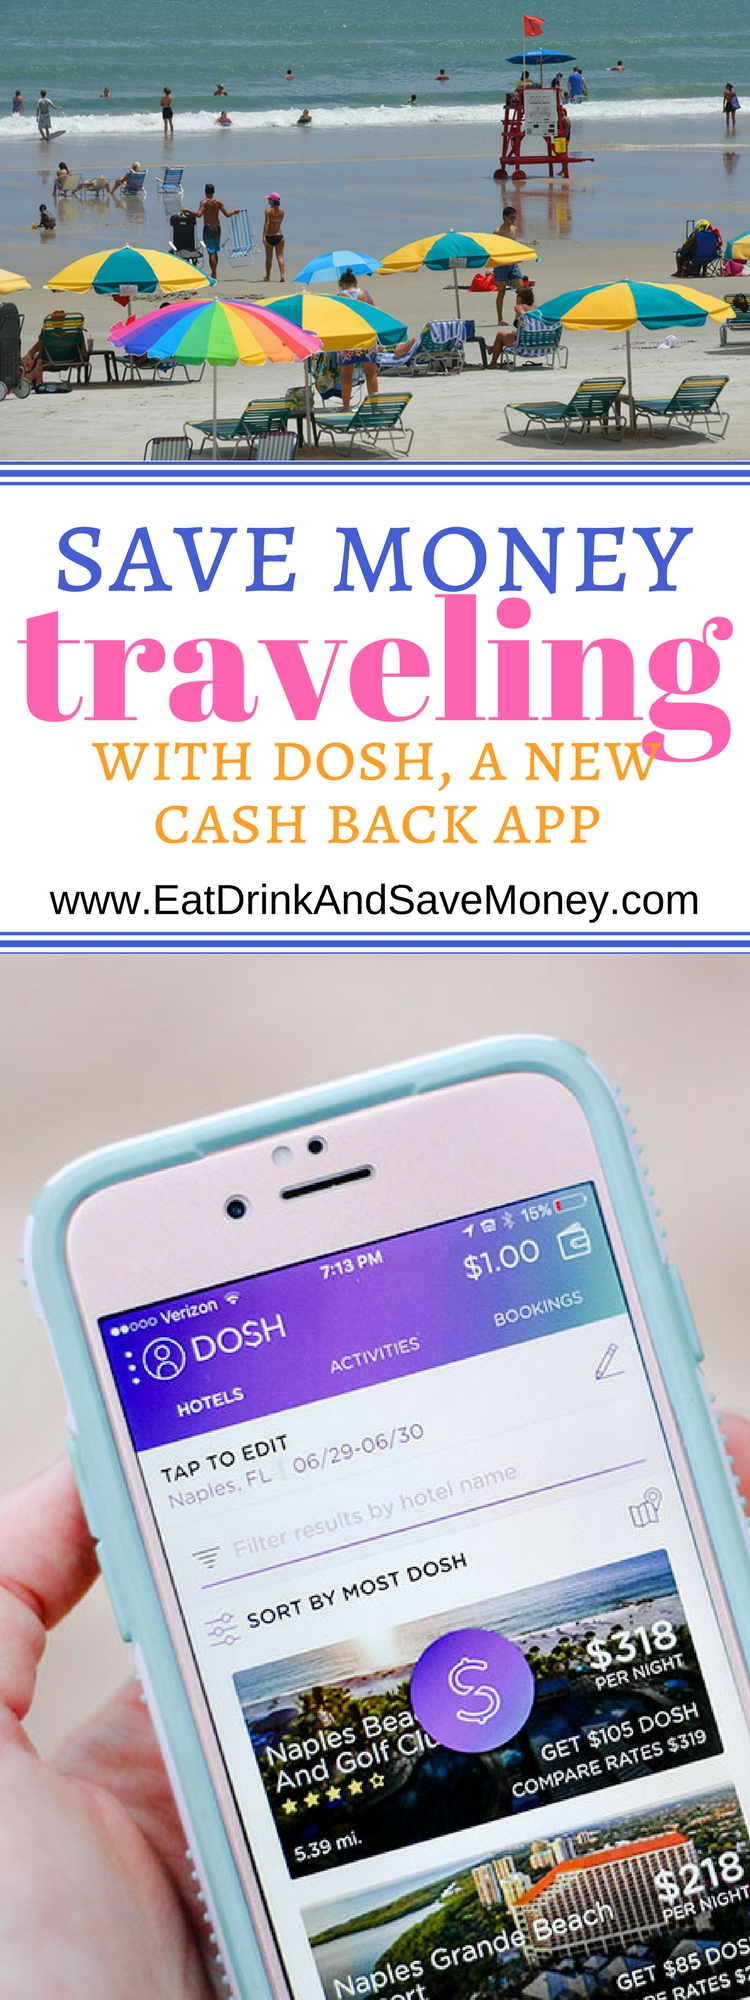 Save Money Traveling with Dosh, a new cash back app that save you money on hotels. Get cash back on hotels